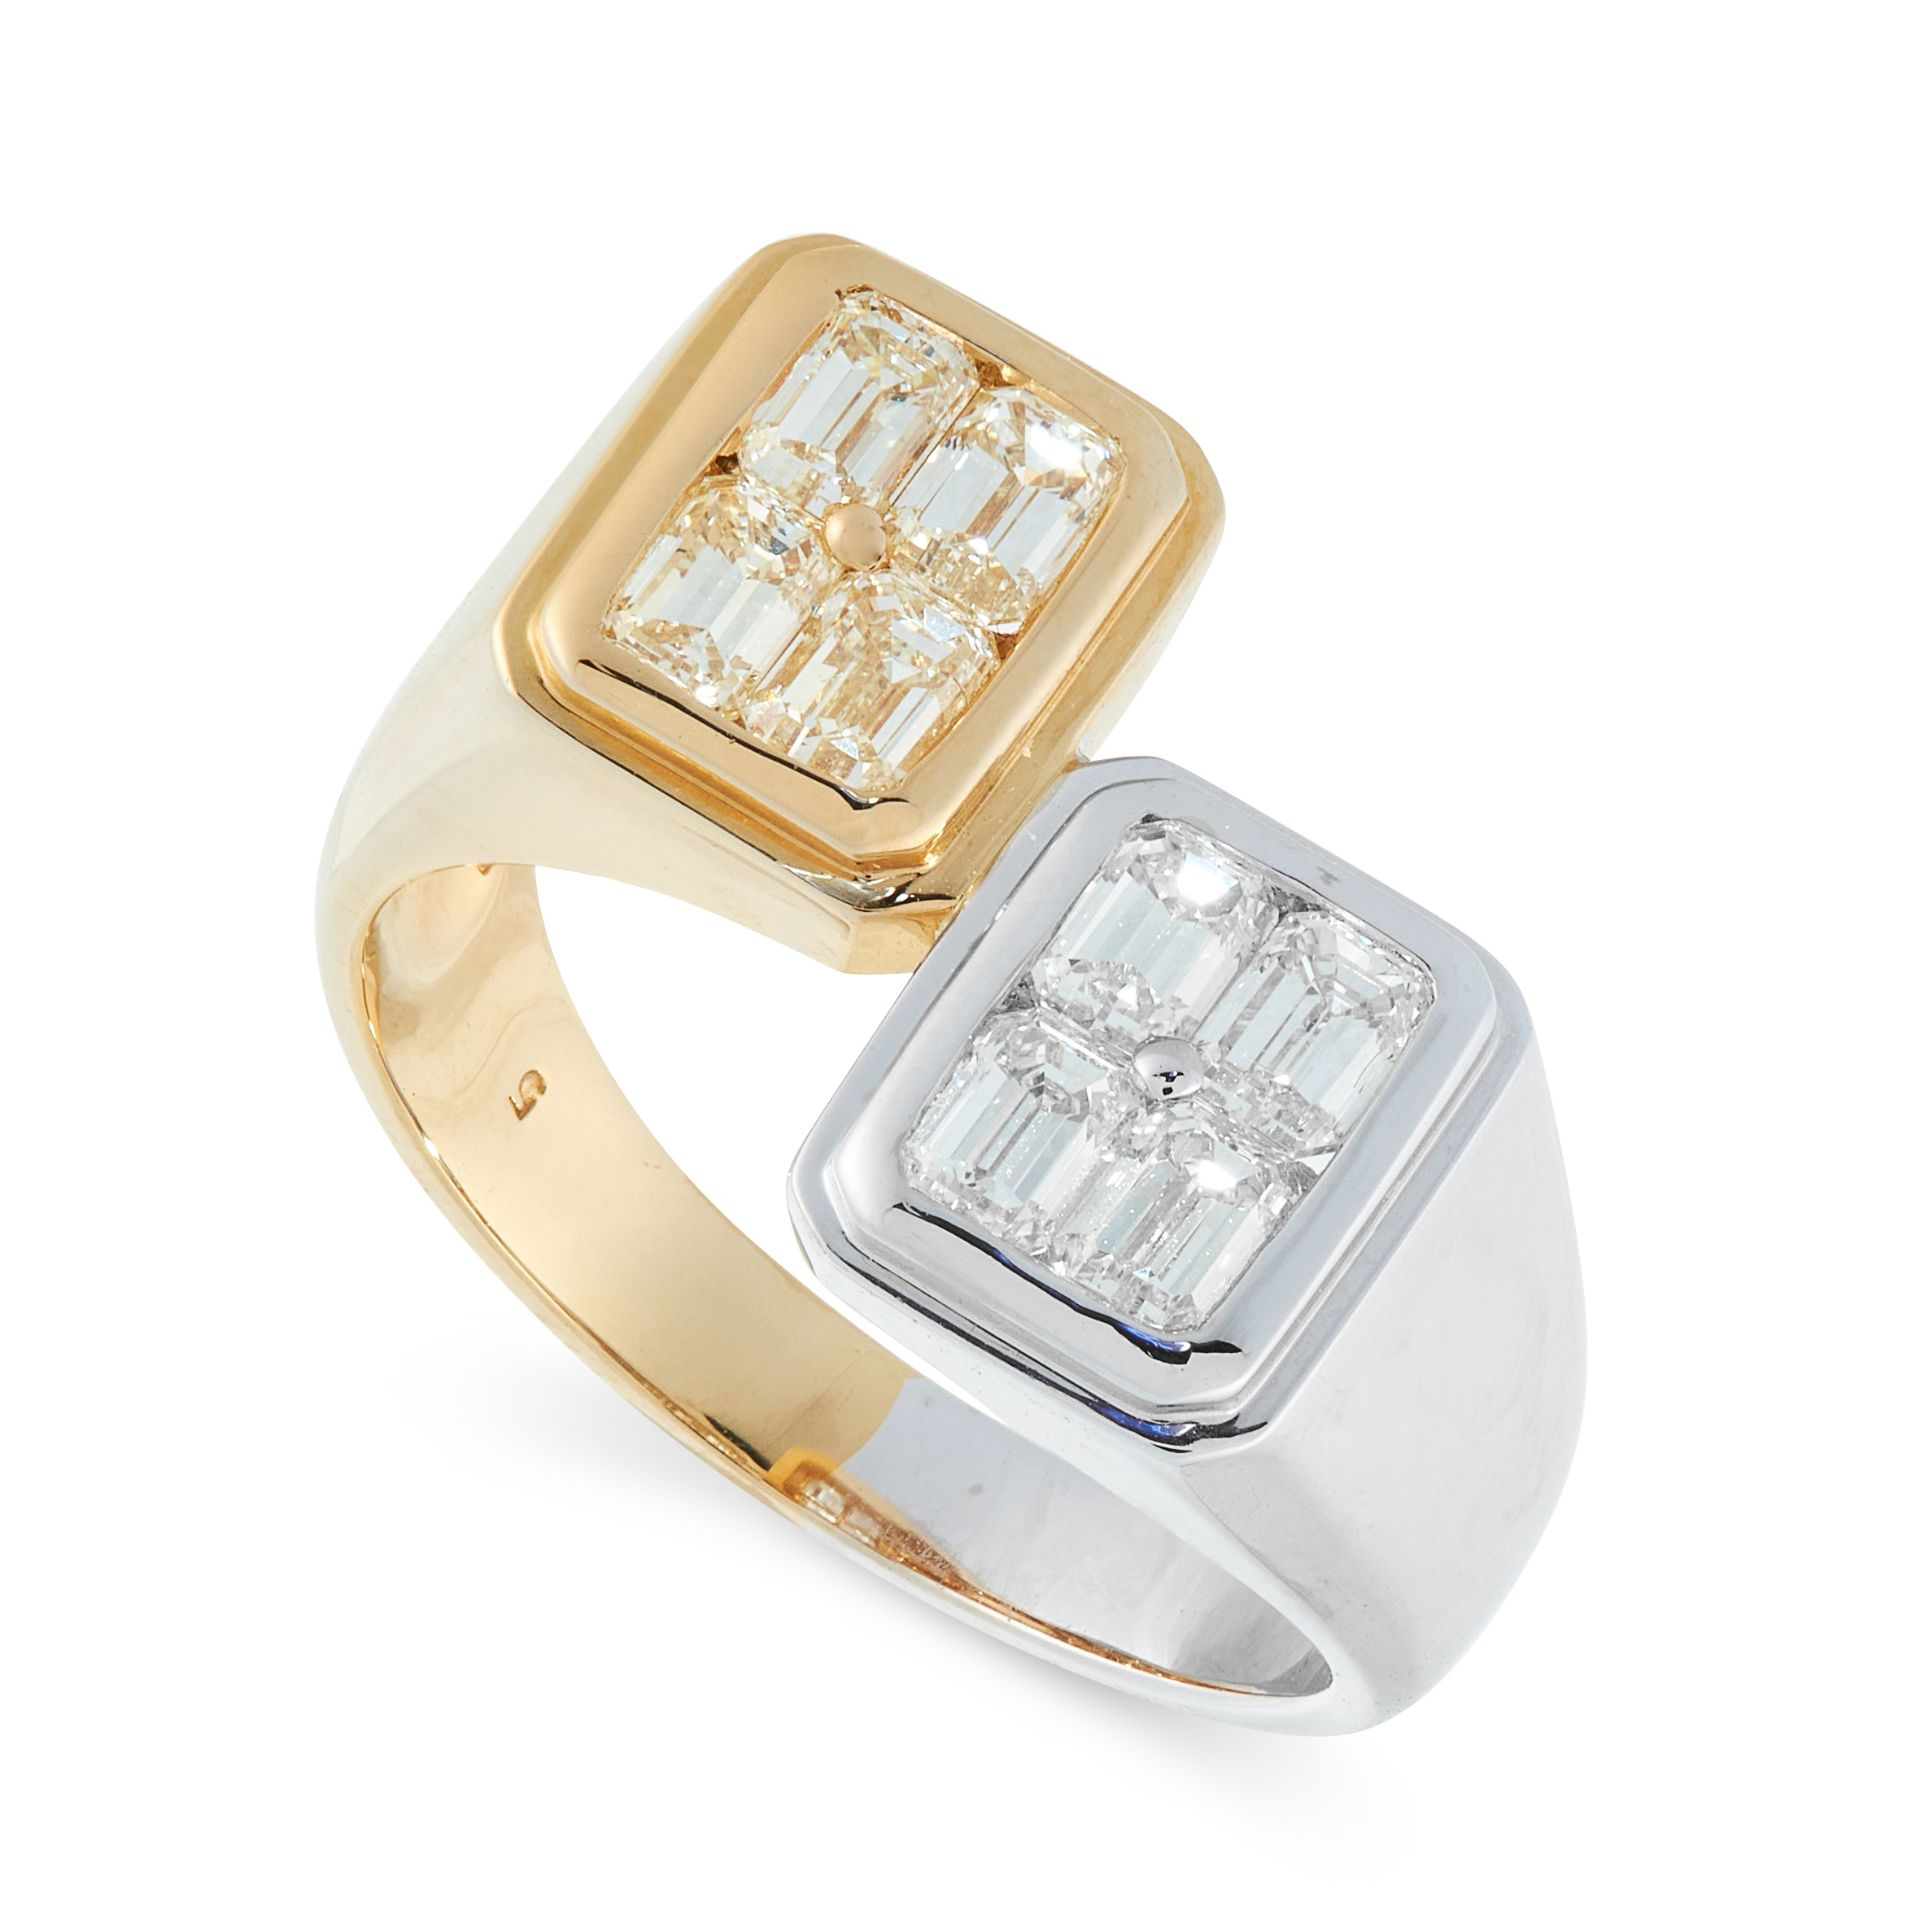 A DIAMOND DRESS RING in 18ct yellow and white gold, in open band design, half the ring is in white